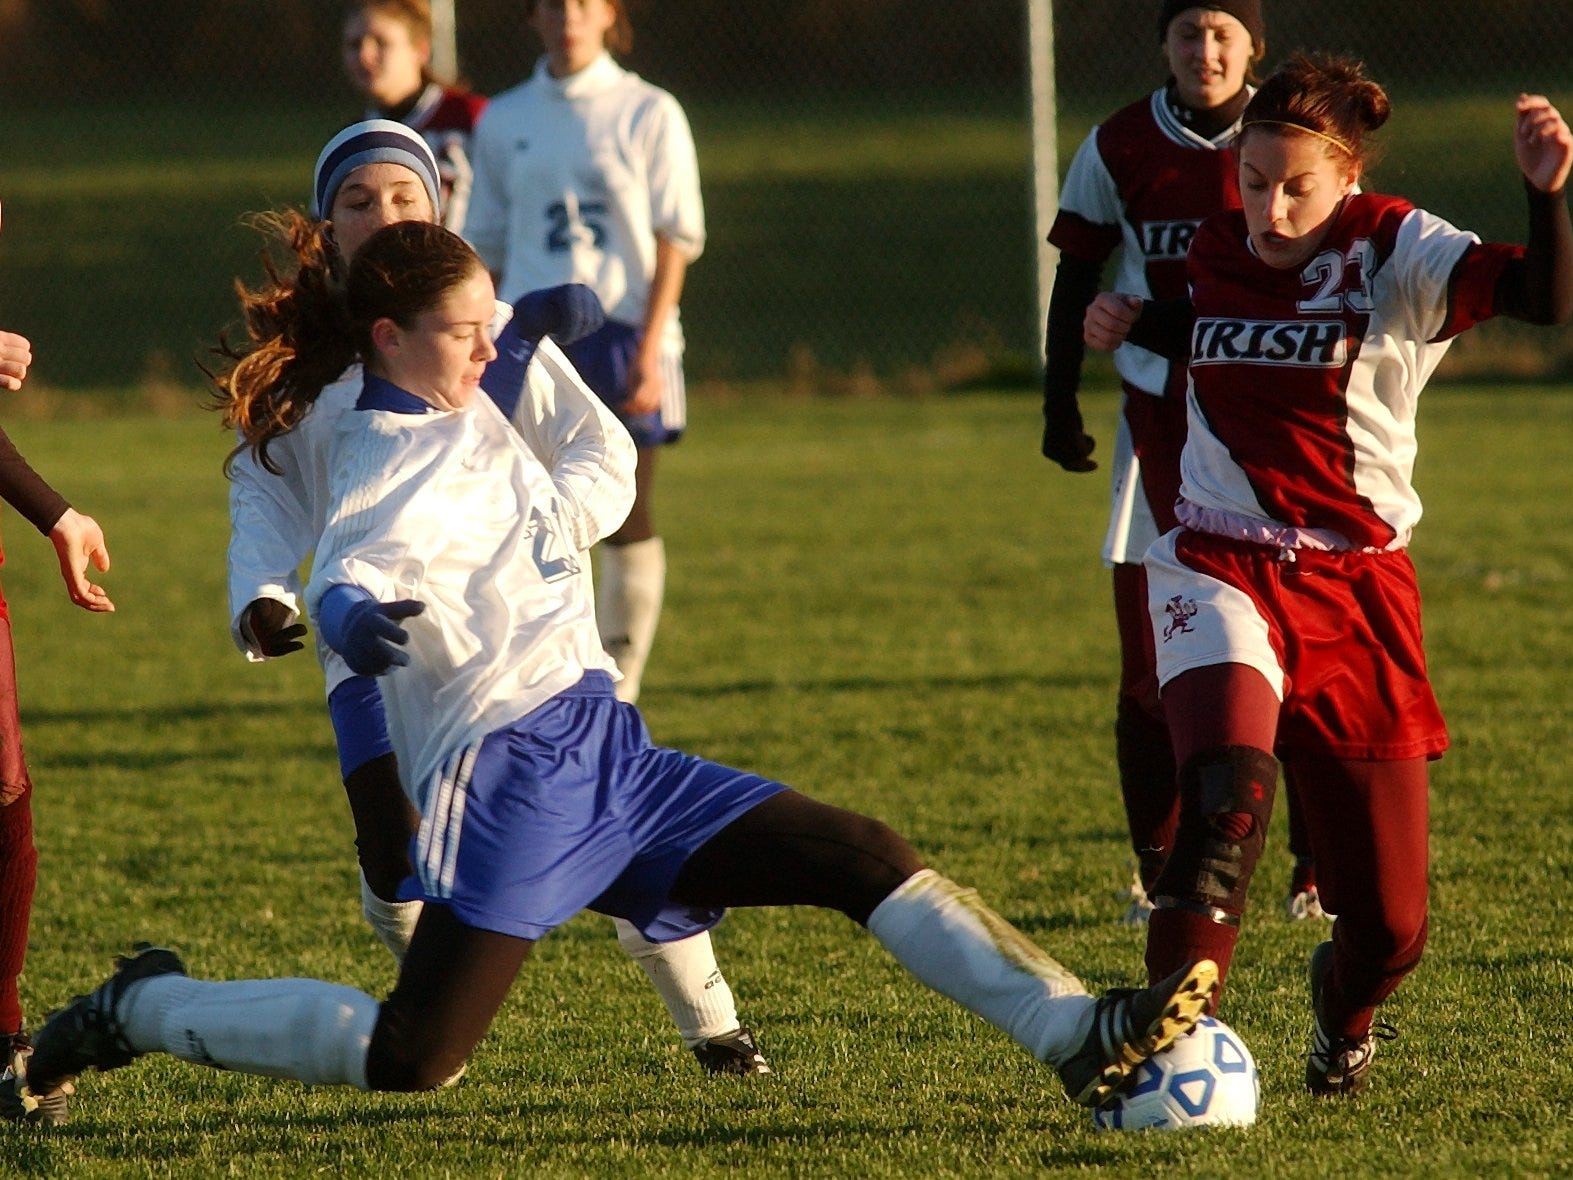 Krista Marcucci of Aquinas is stopped by Grand Island's Sara Hilliard in a state playoff game on Nov. 13, 2004 at Albion.